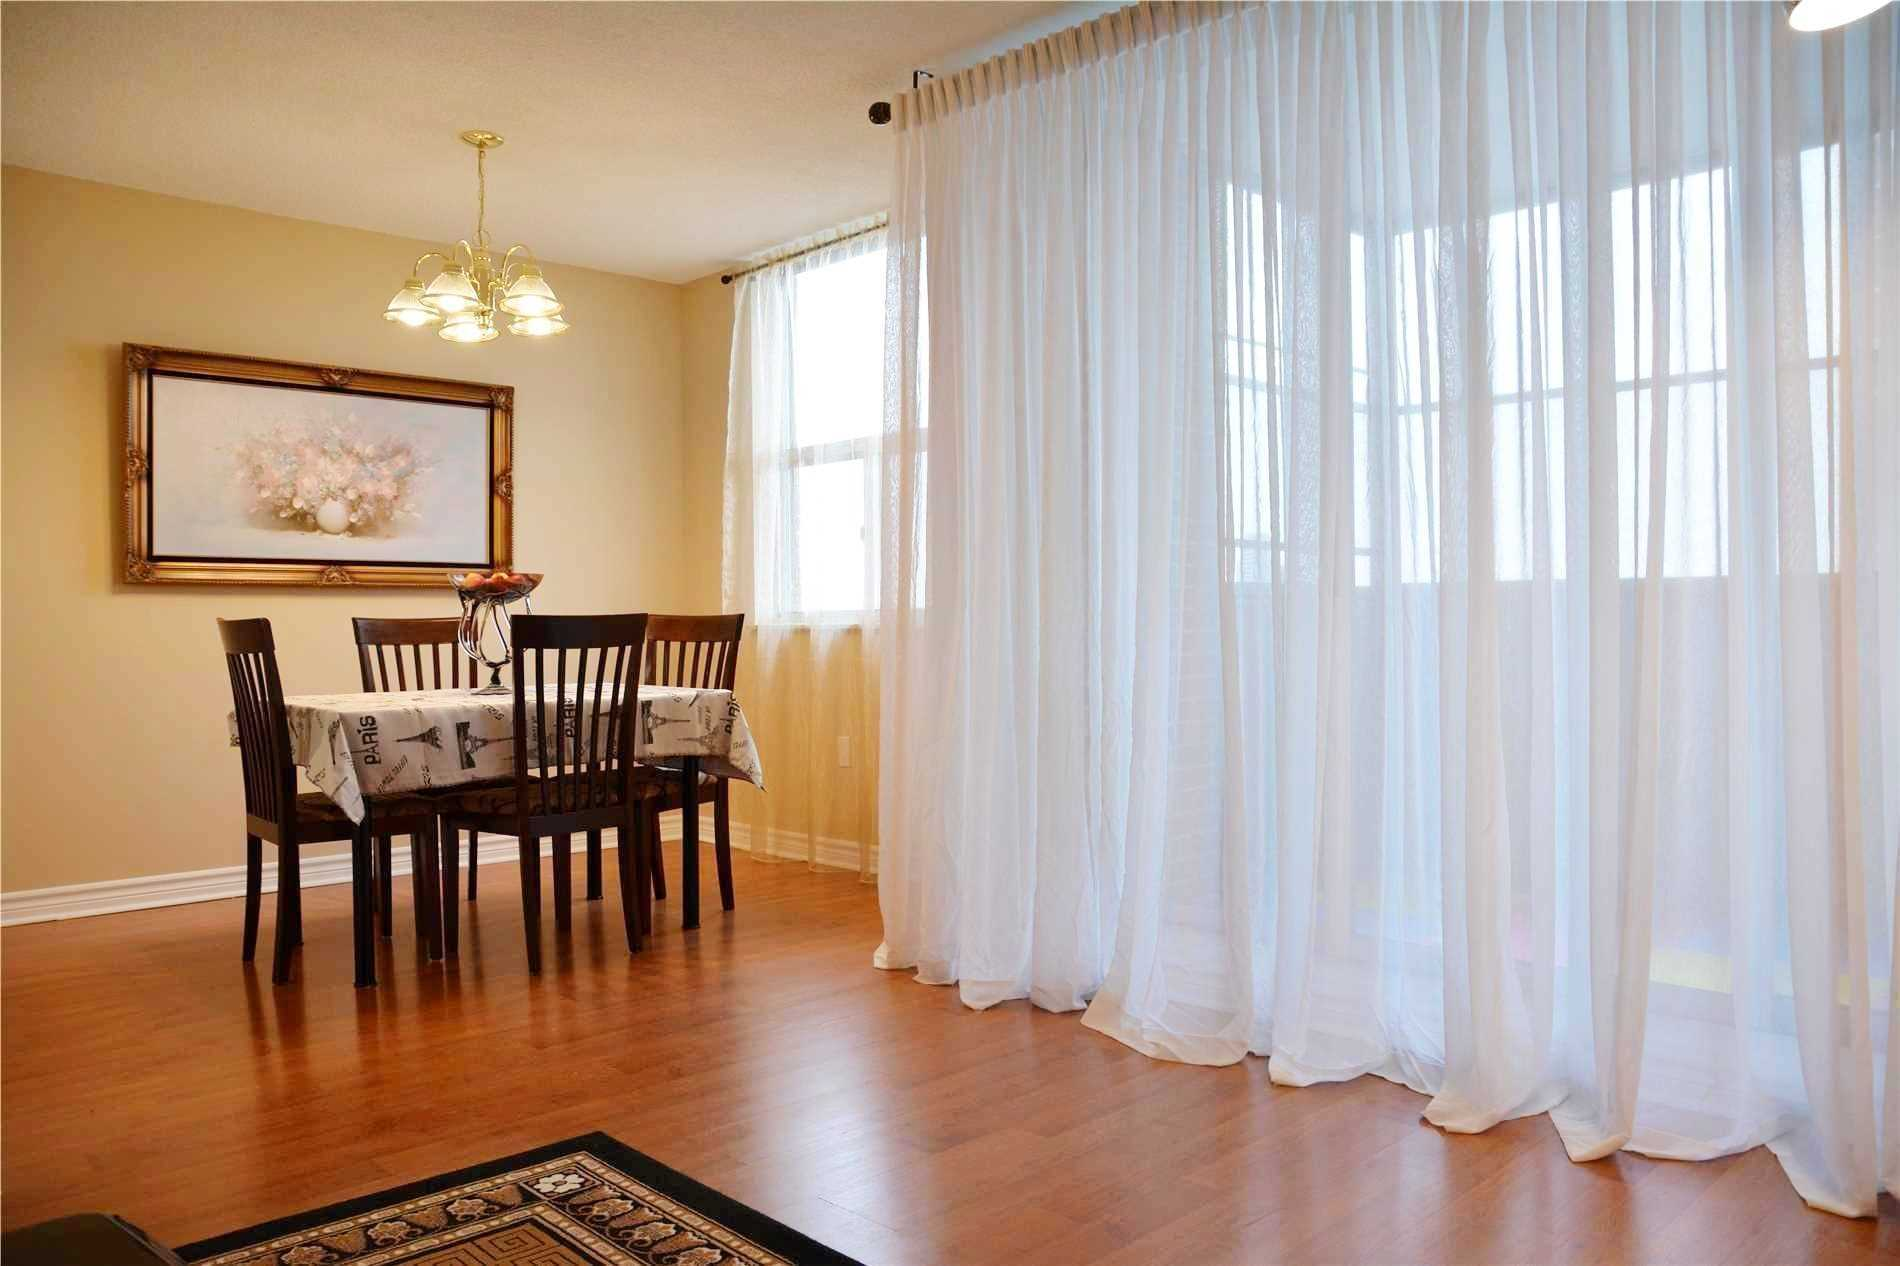 Image 1 of 14 showing inside of 3 Bedroom Condo Apt Apartment for Lease at 205 Hilda Ave Unit# 2104, Toronto M2M4B1